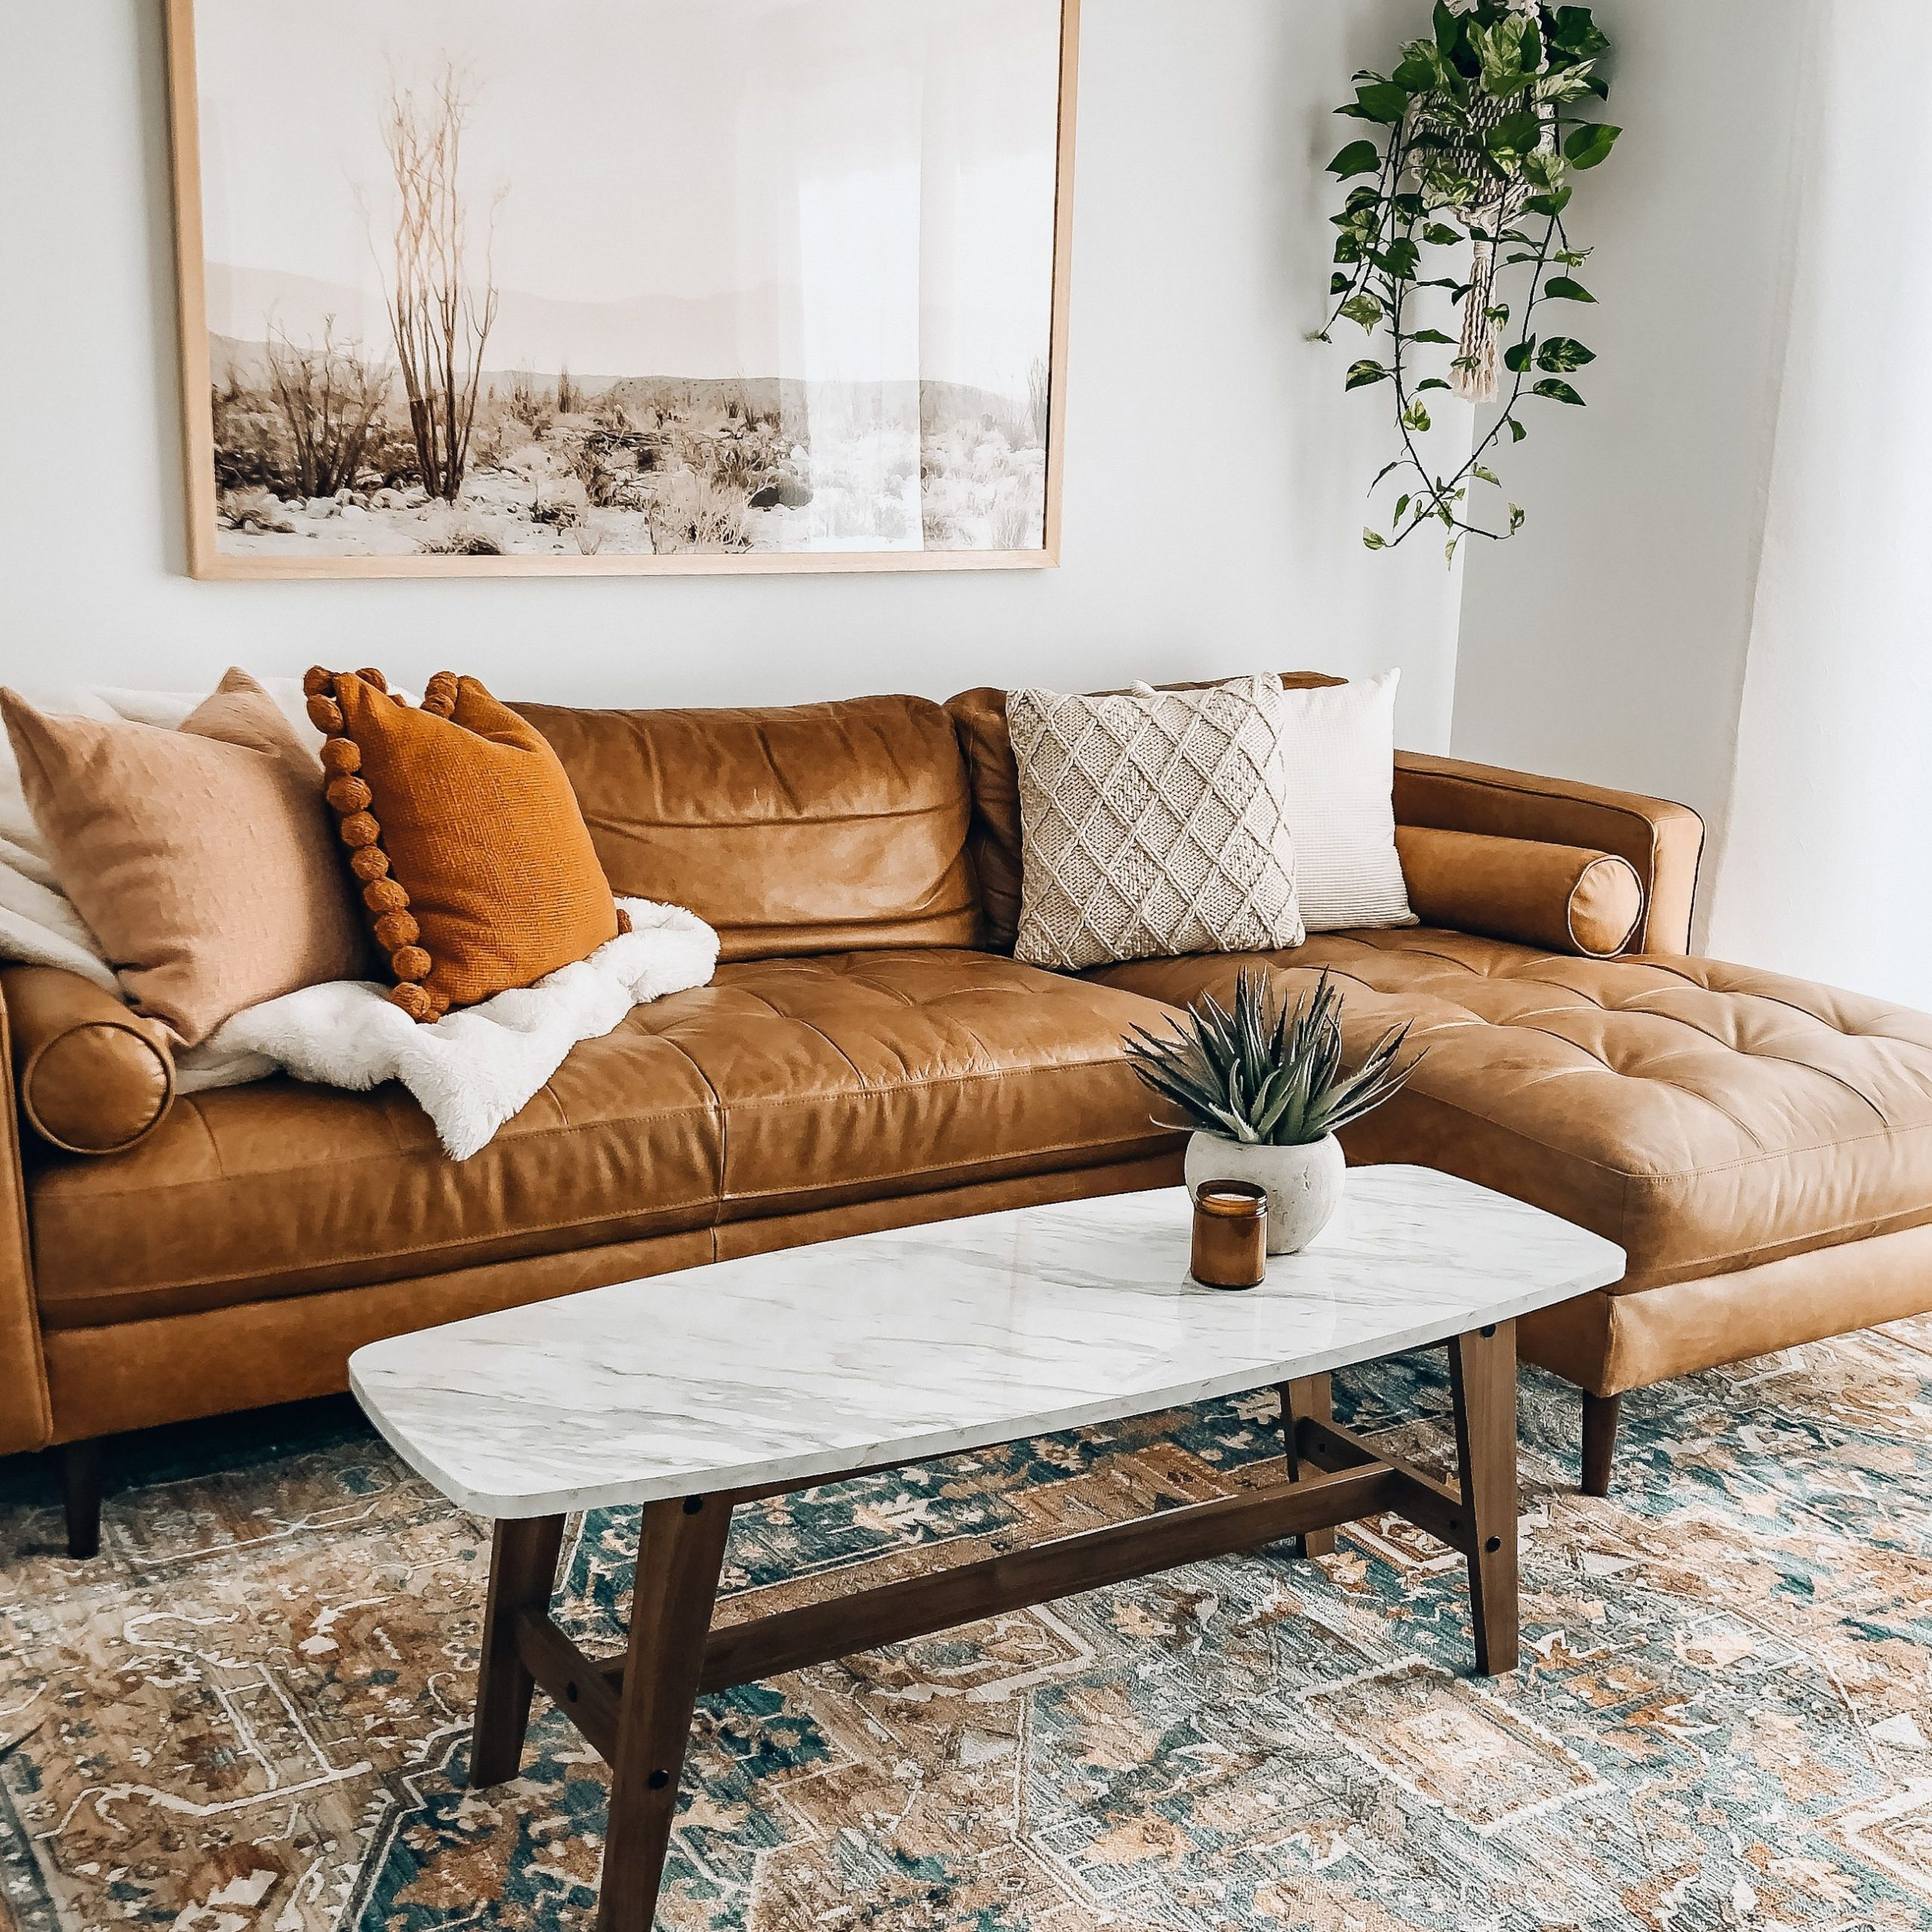 Artistic Boho Living Room Decor On A Budget Ideas Spaces Living Room Chairs On Prodigious Simple Home Decor Ideas for Your Boho Living Room On Boho Living Room Decor On A Budget Ideas Spaces Living Room Chairs